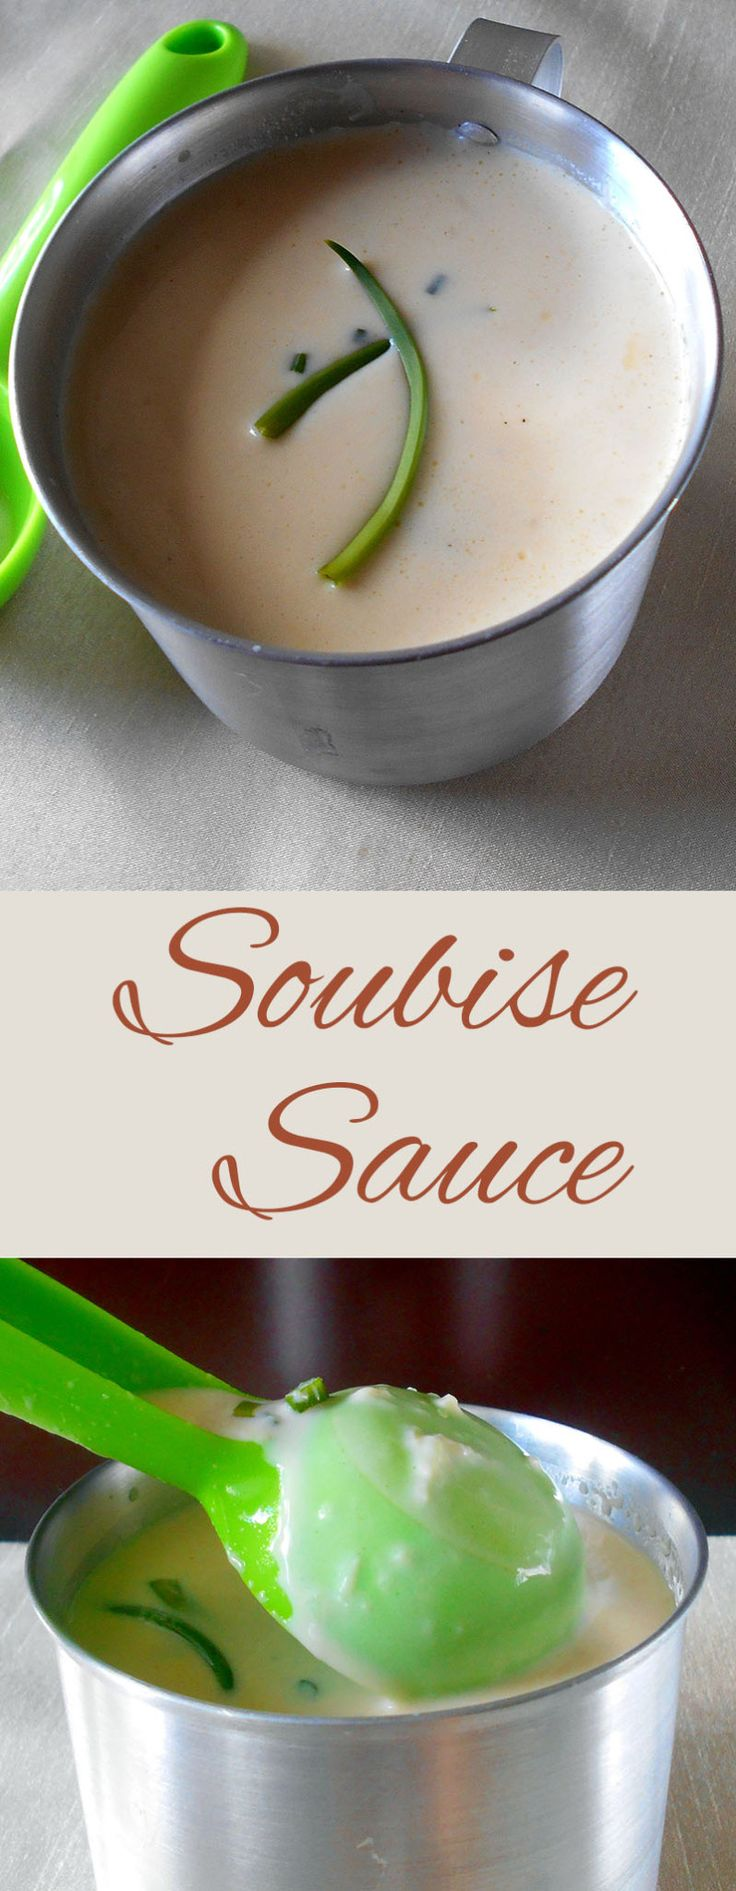 Soubise Sauce is a creamy version of Bechemel sauce.  Quick and easy to make.  Add to any French Food Recipe.